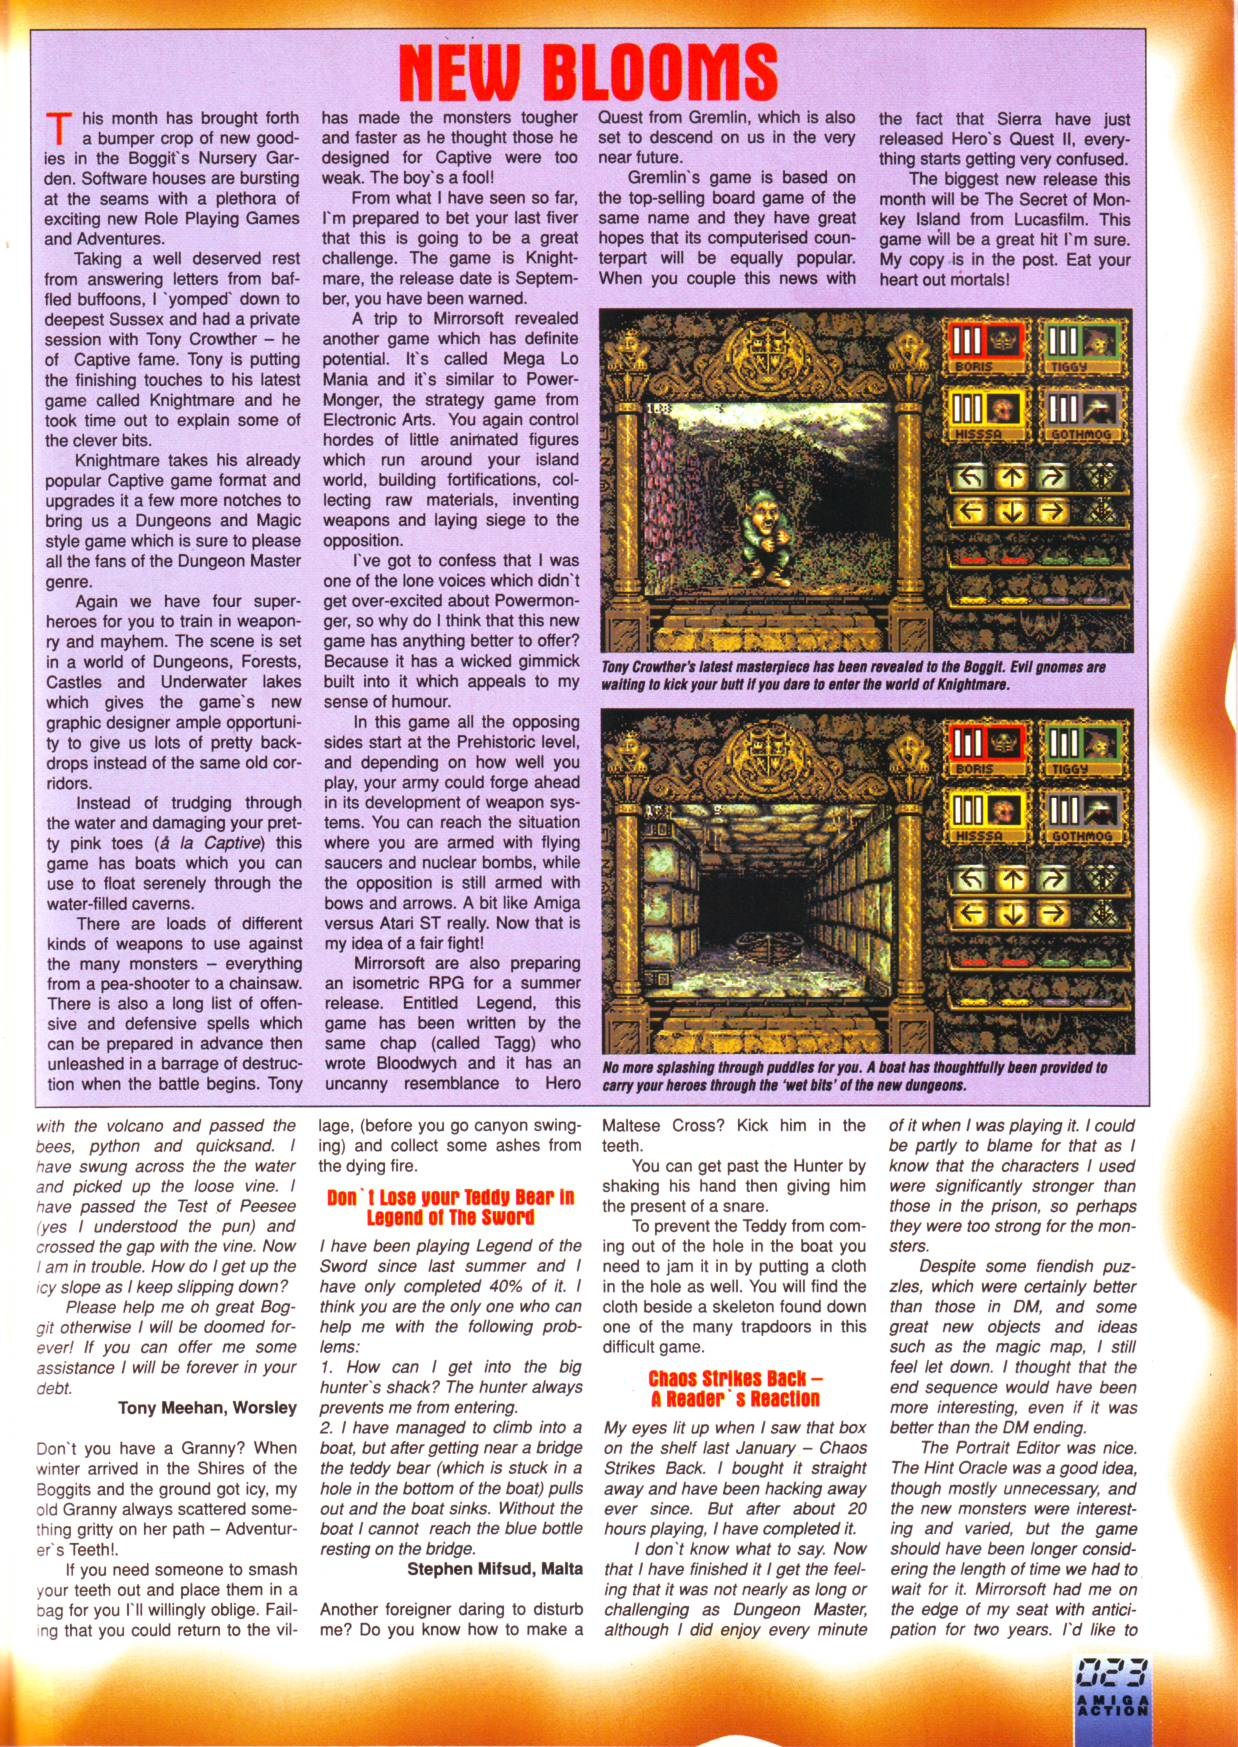 Chaos Strikes Back for Amiga Mail published in British magazine 'Amiga Action', Issue #21 June 1991, Page 23